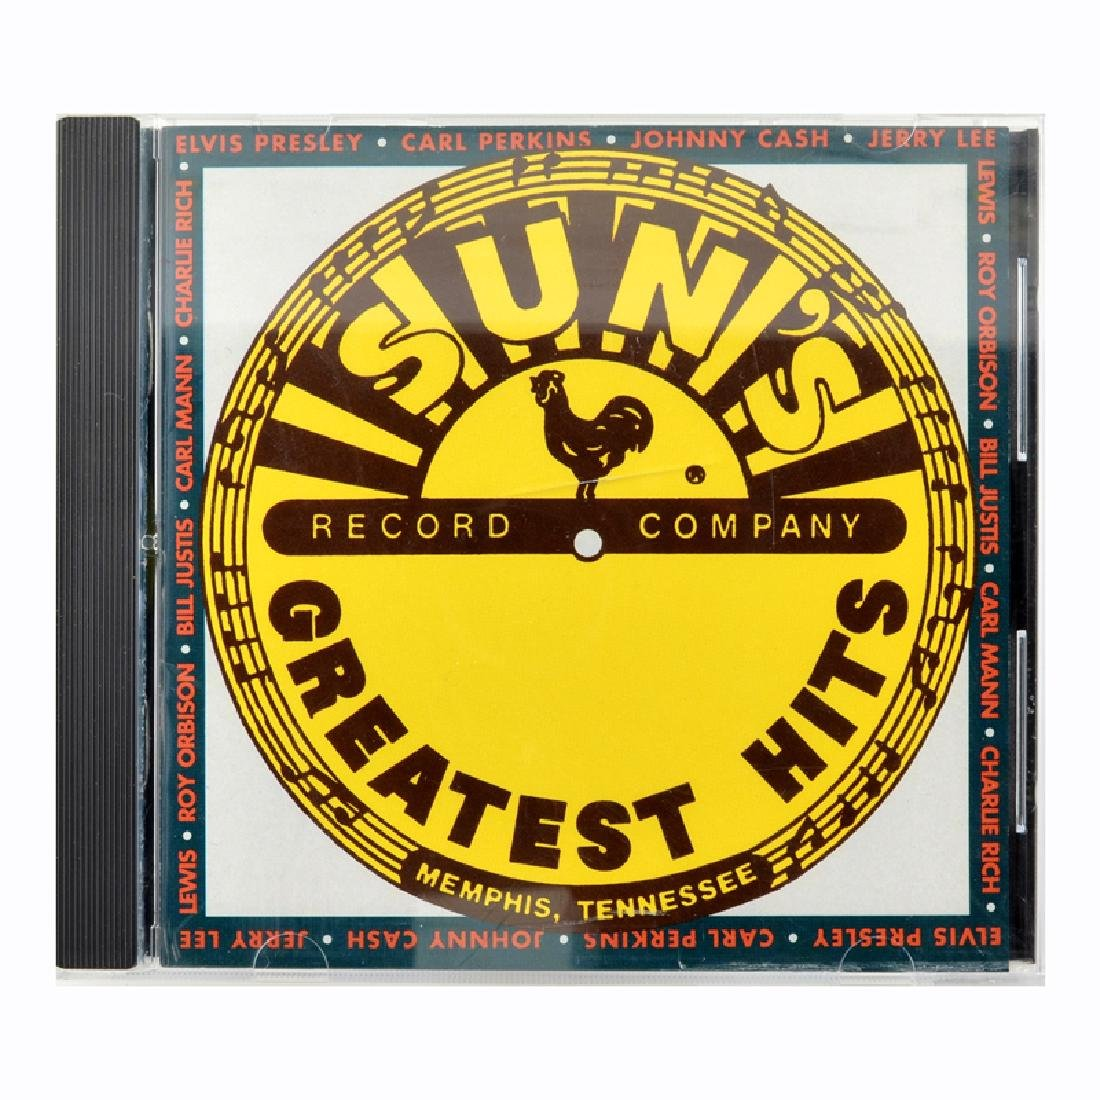 Sun's Album Company Greatest Hits CDs